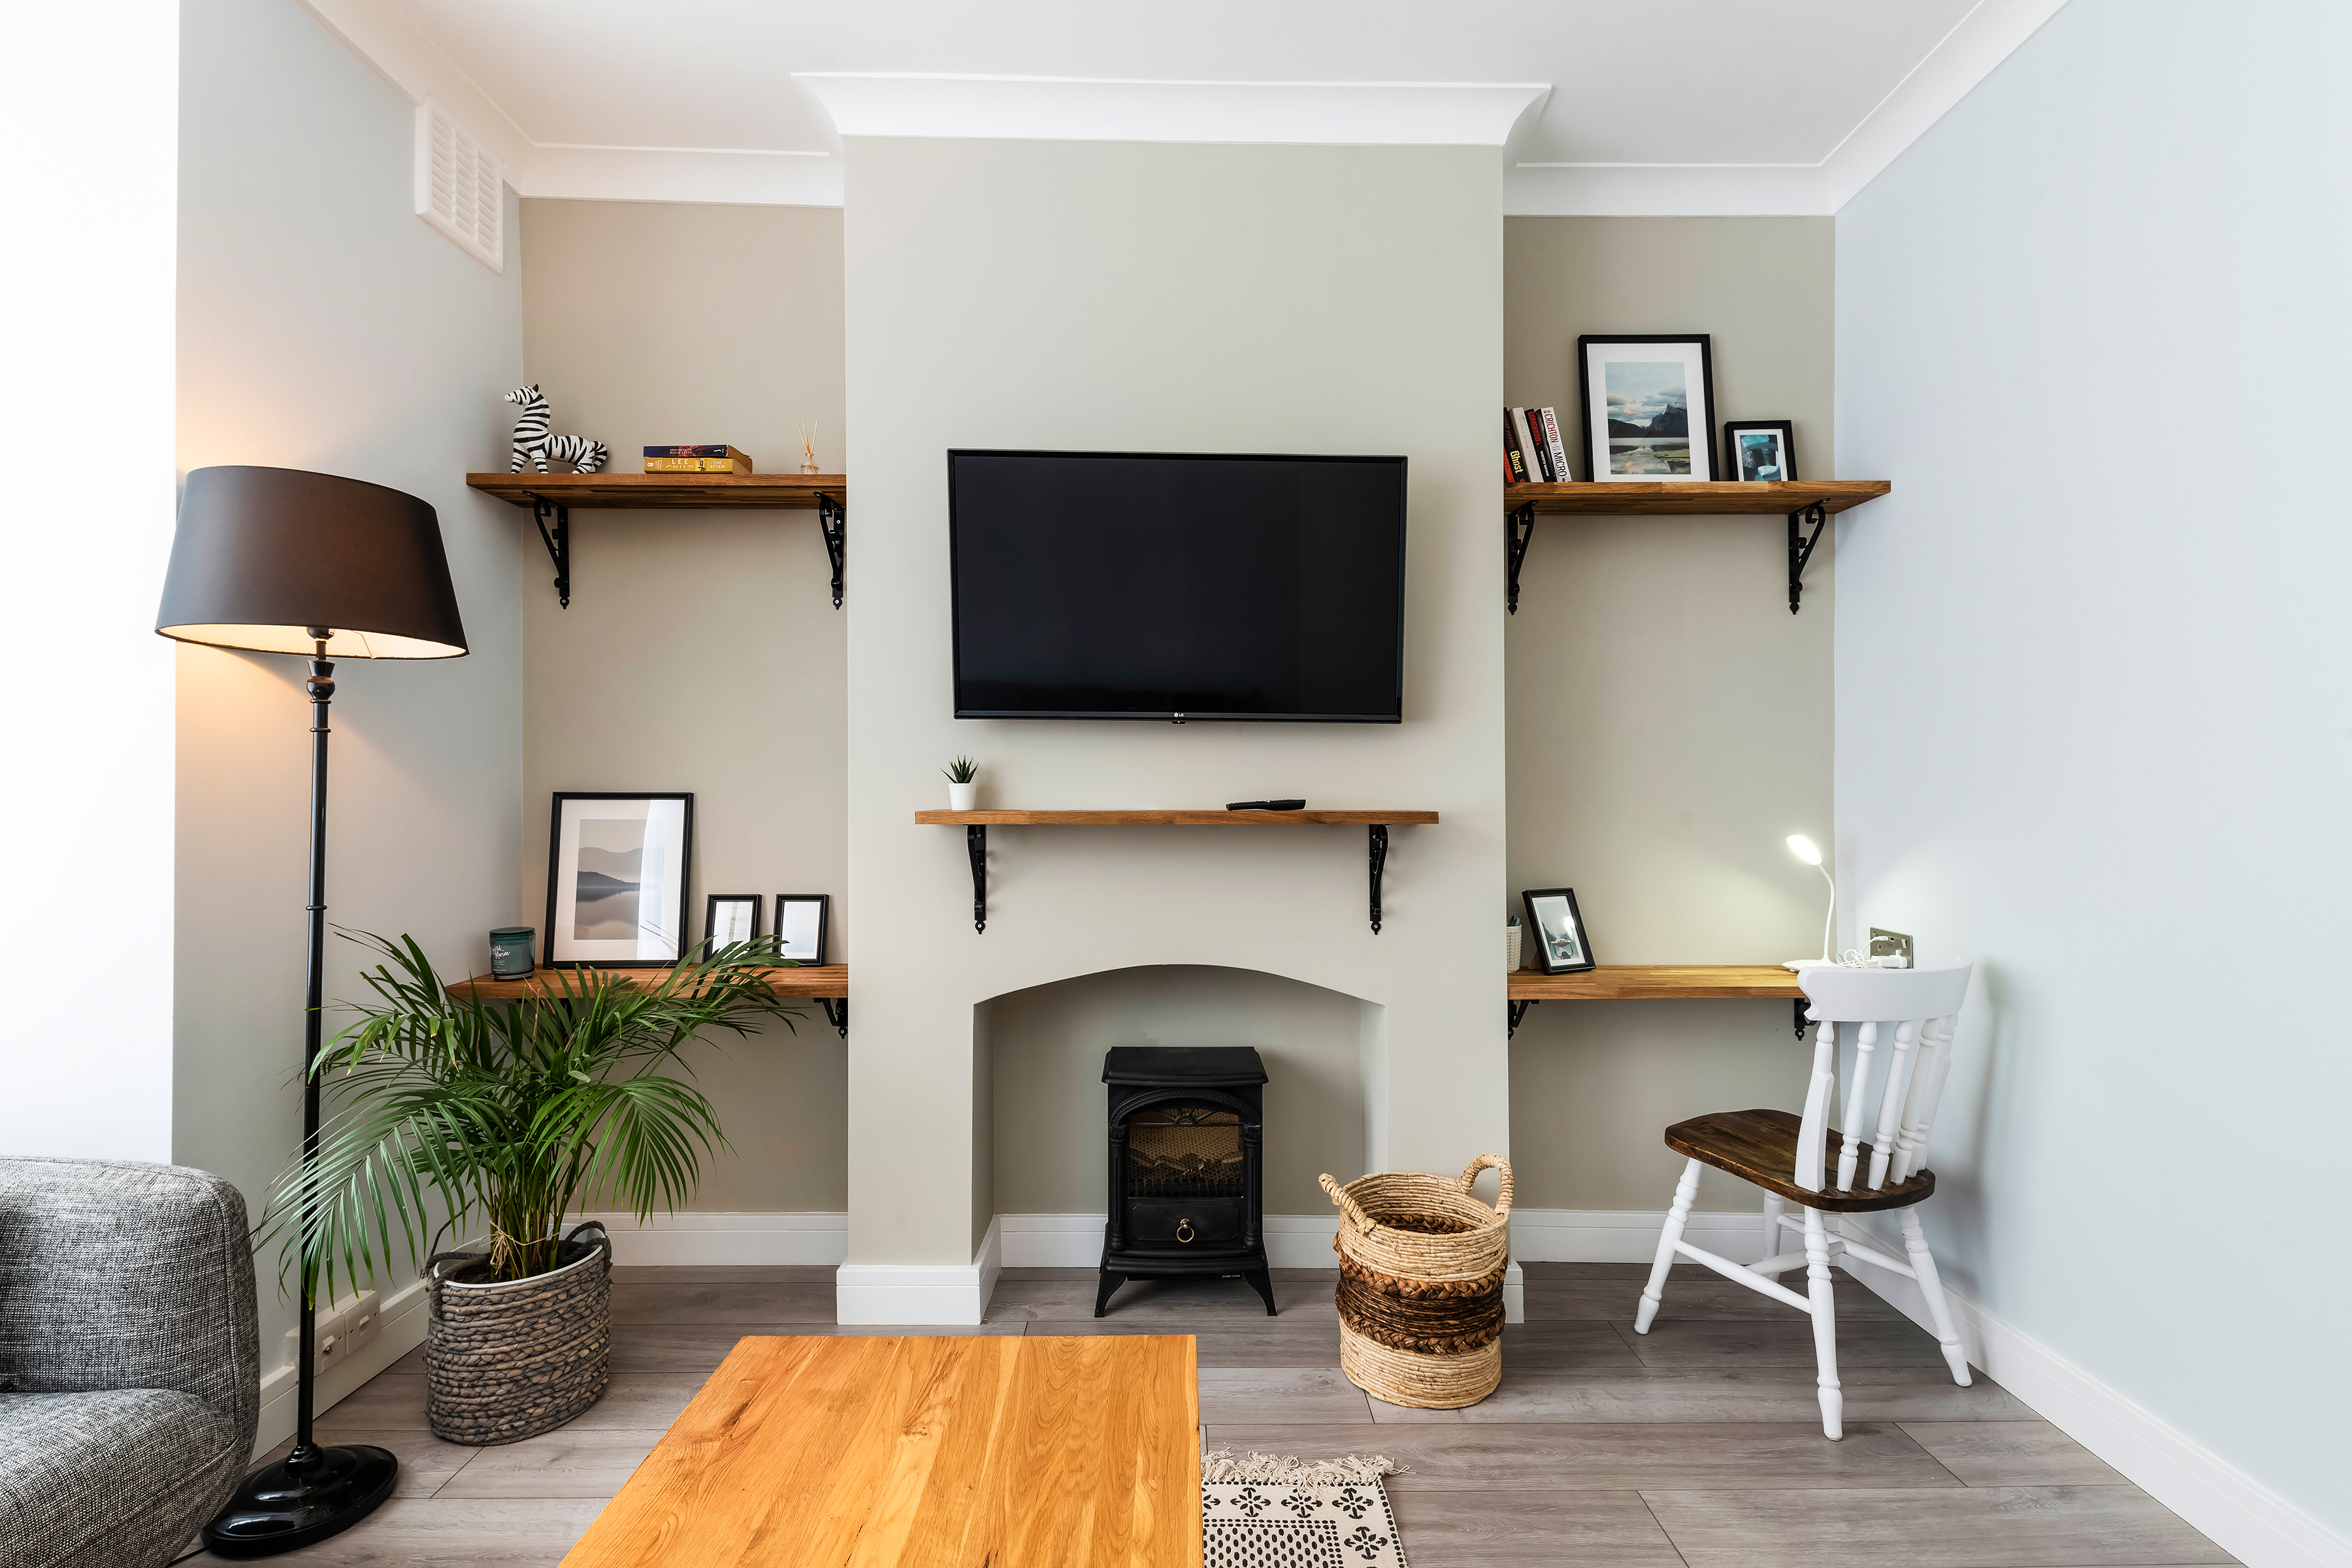 South East London Hidden Gem Apartments For Rent In Greater London England United Kingdom